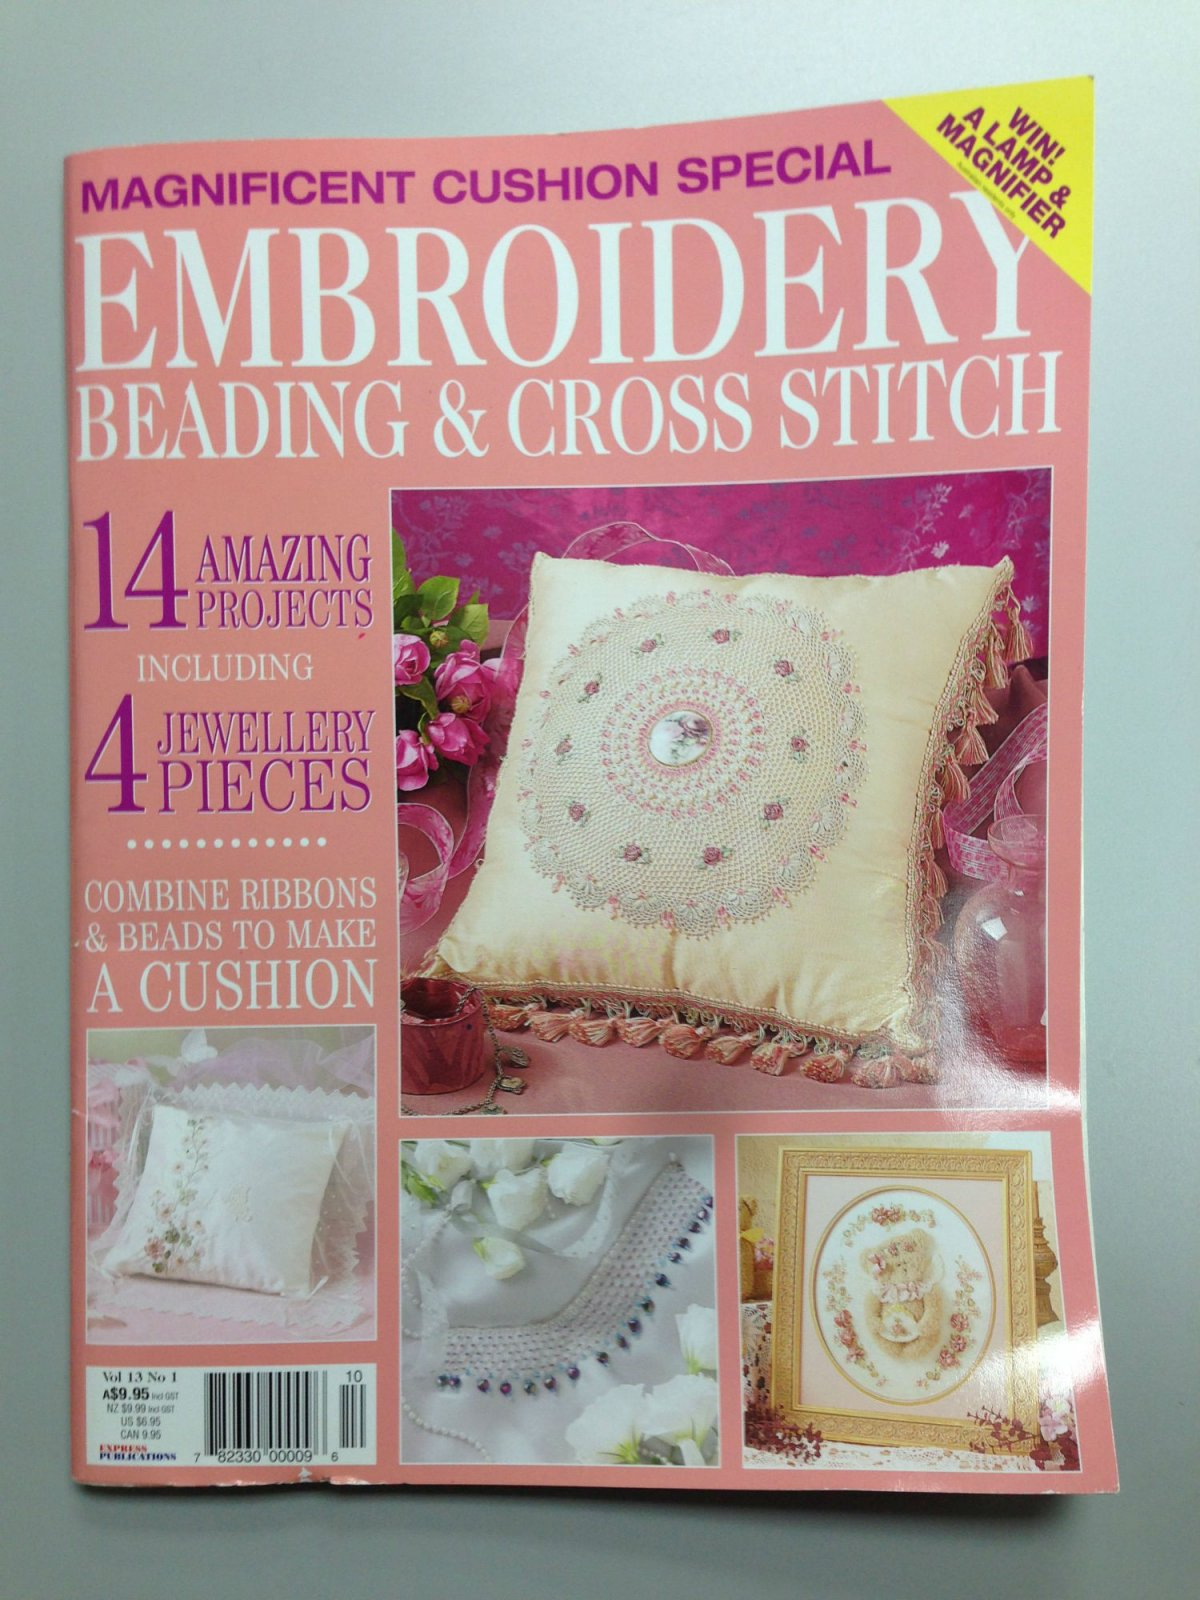 Embroidery Beading & Cross Stitch Vol 13 No. 1